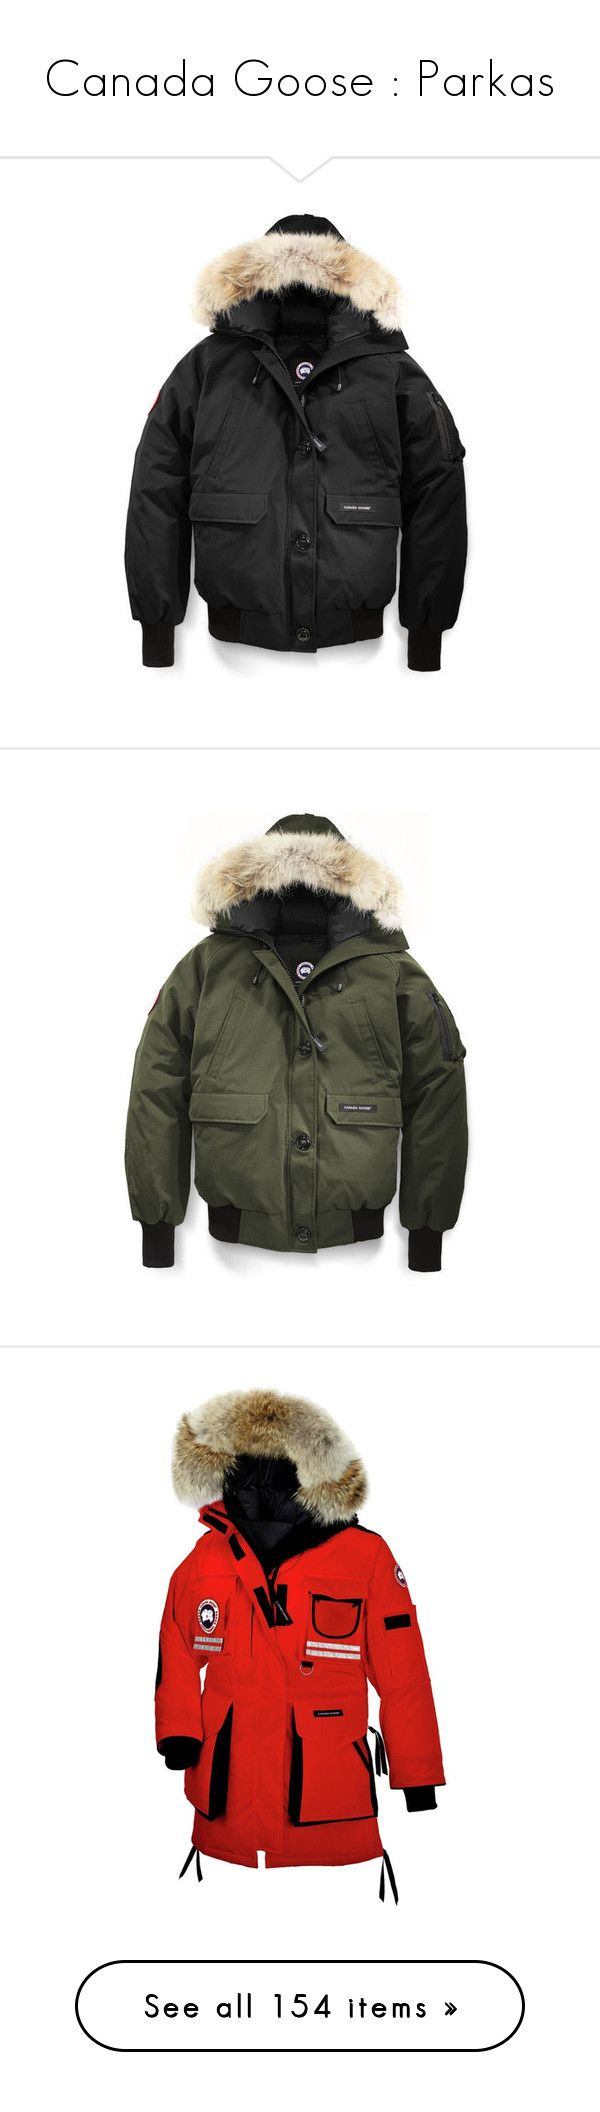 """Canada Goose : Parkas"" by bianca-cazacu ❤ liked on Polyvore featuring outerwear, jackets, bomber jackets, bomber style jacket, canada goose jacket, canada goose, men's fashion, men's clothing, men's outerwear and men's coats"